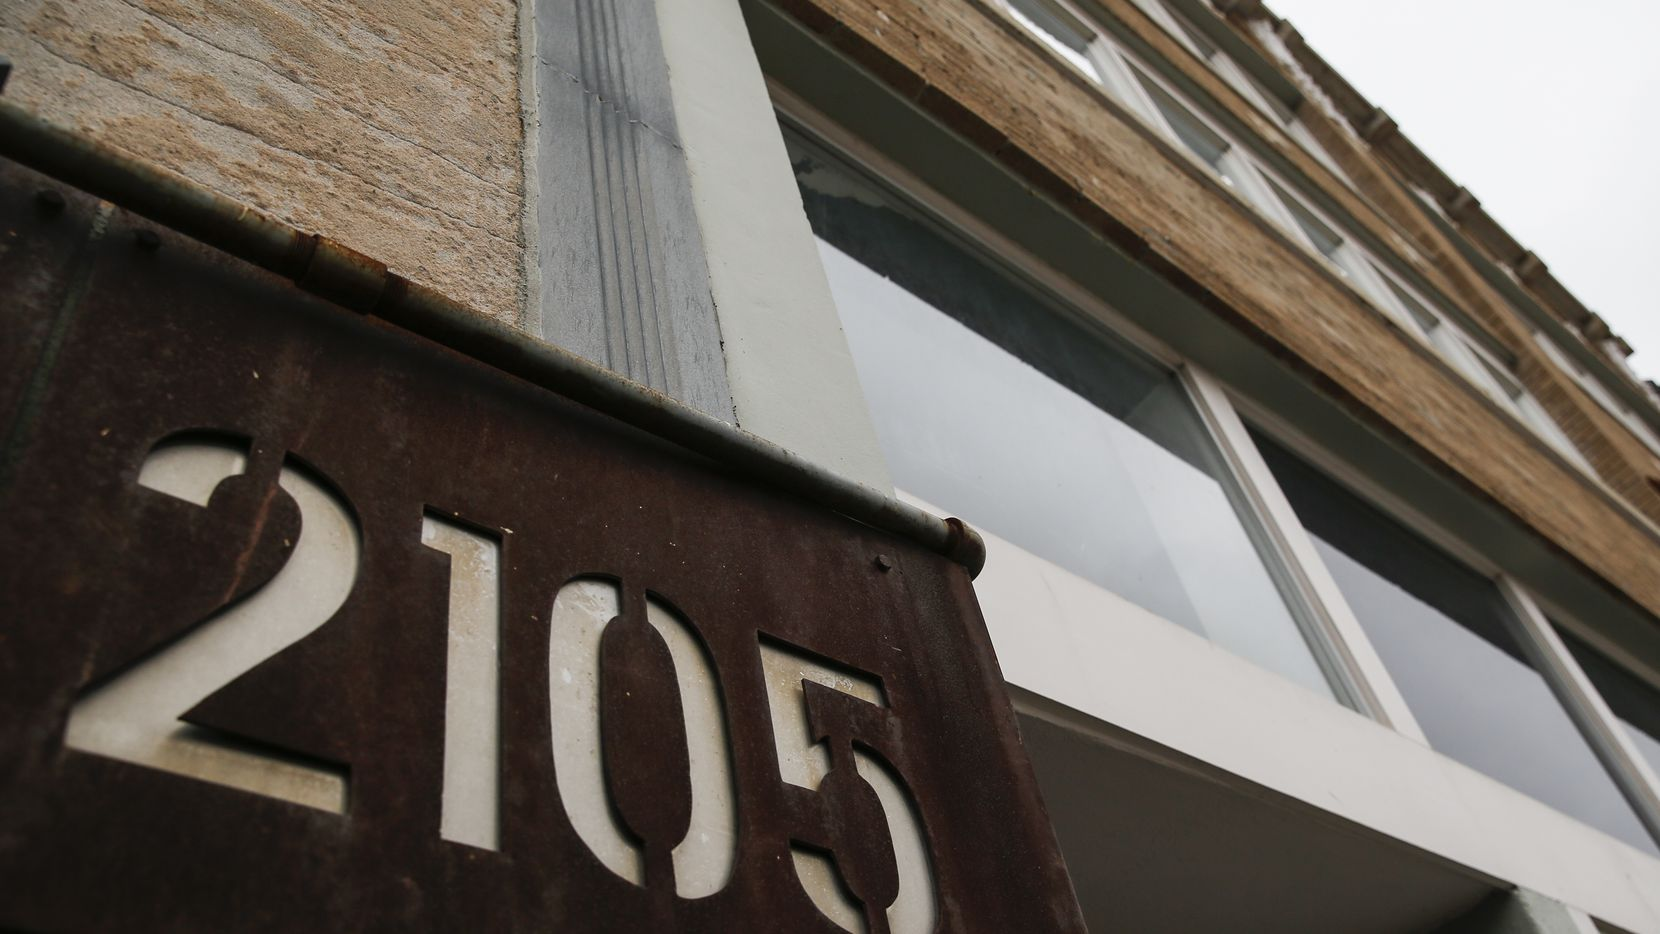 The building at 2105 Commerce will become a micro-hotel. (Ryan Michalesko/The Dallas Morning News)